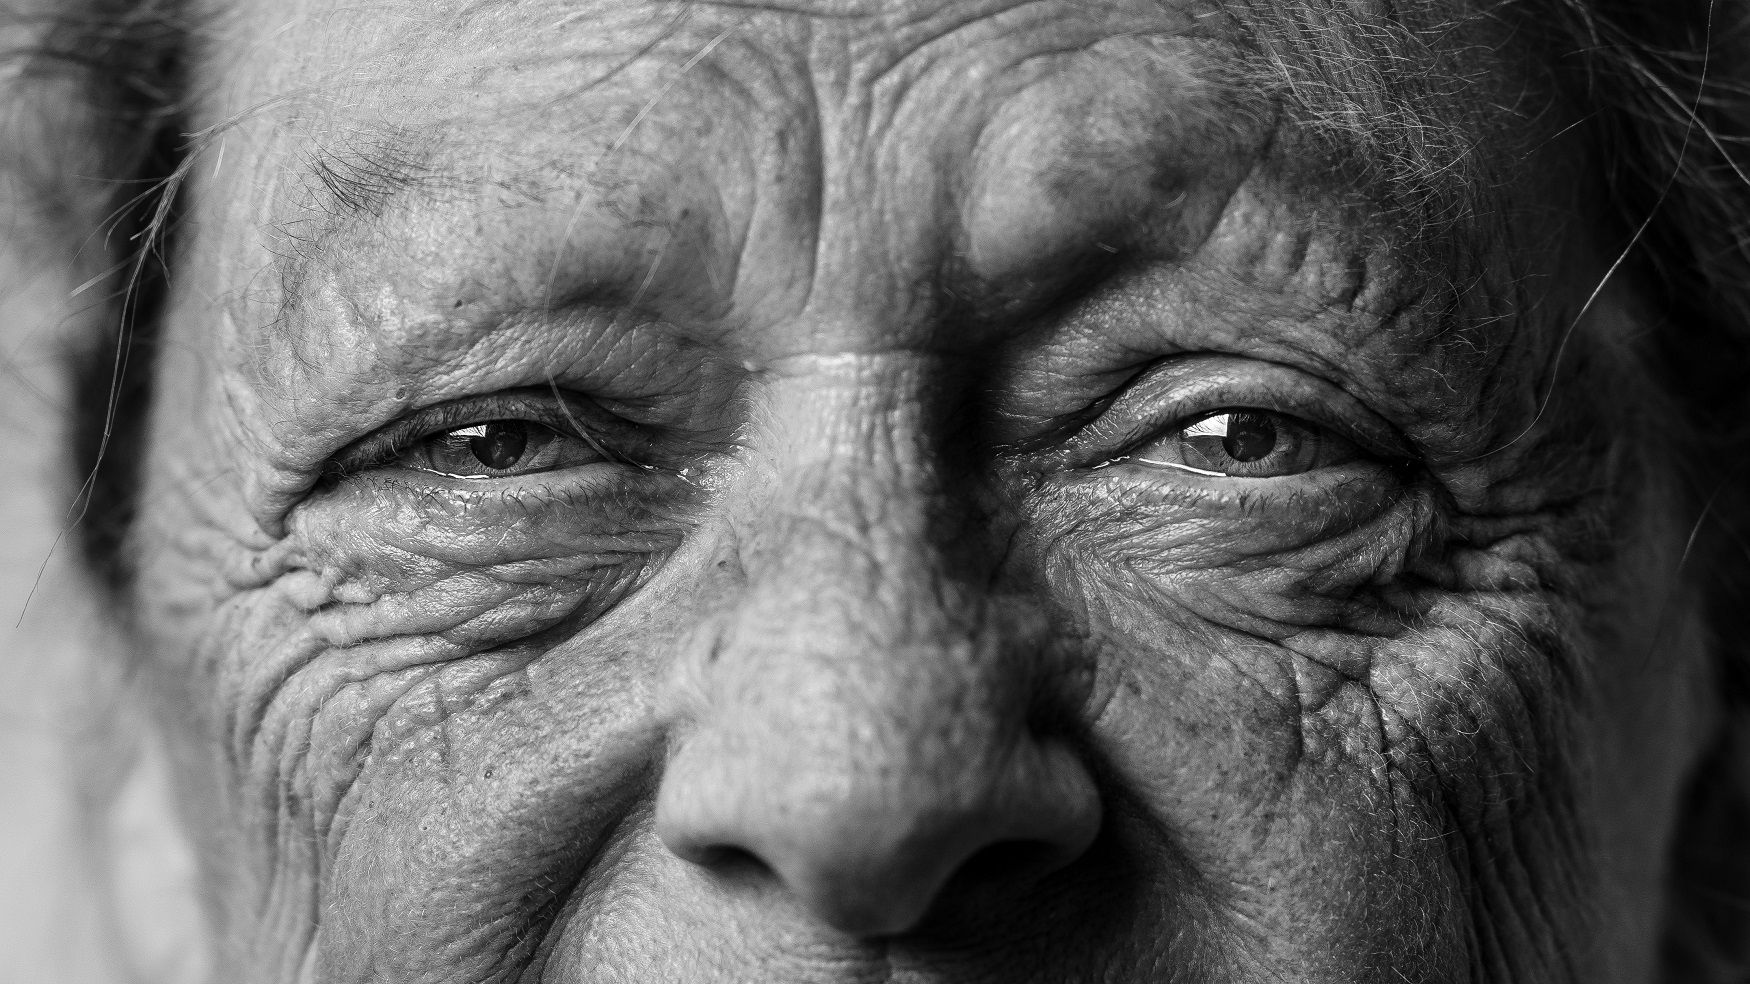 Close-up of older person's eyes